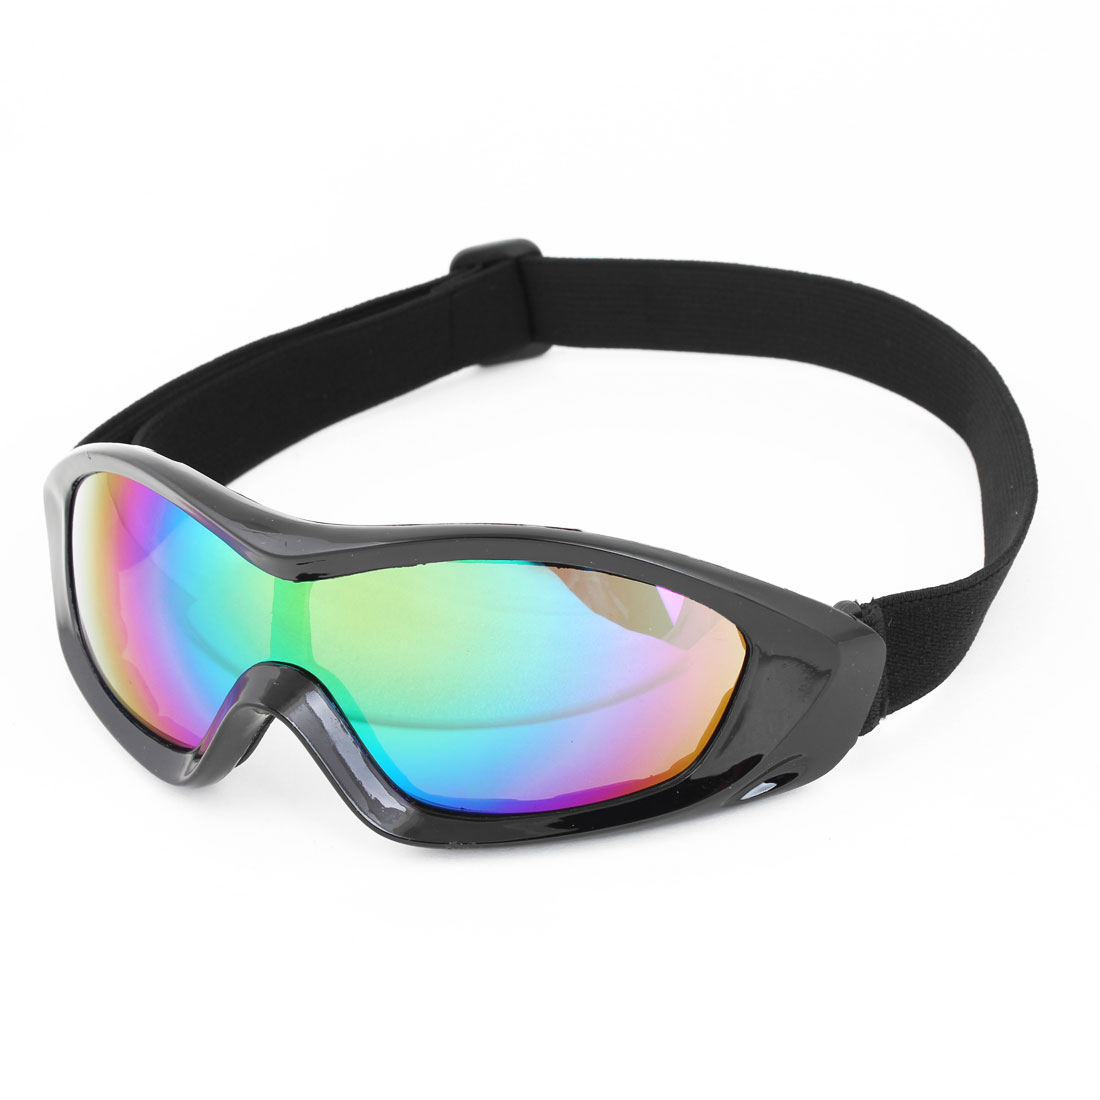 Black Full Frame Multicolored Lens Motorcycle Protective Goggles Glasses